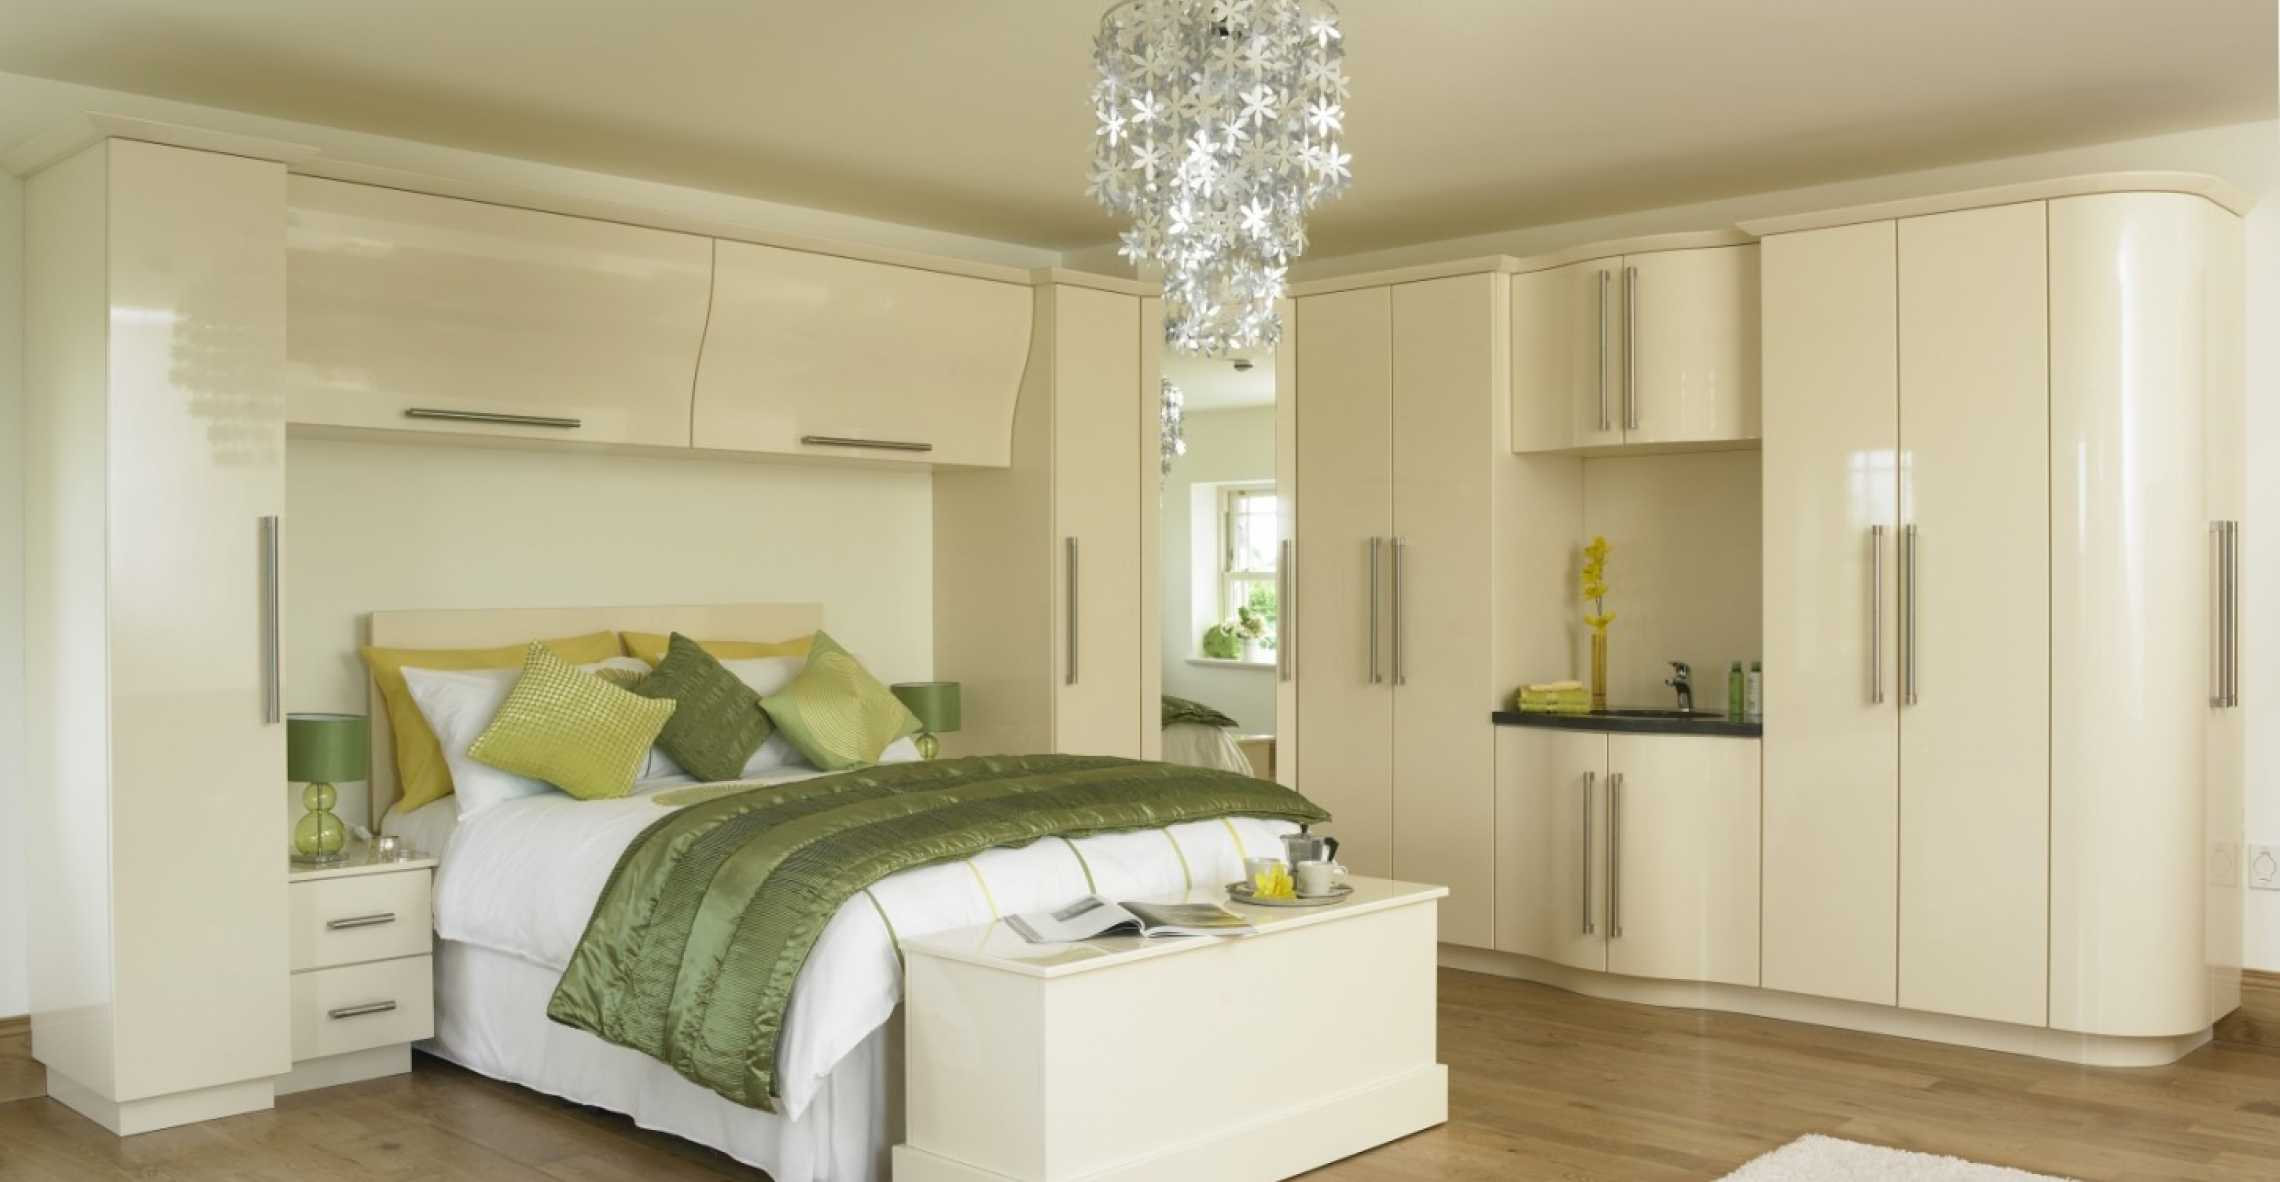 Bedroom fitted wardrobes bedroom fitted wardrobes bedroom fi.